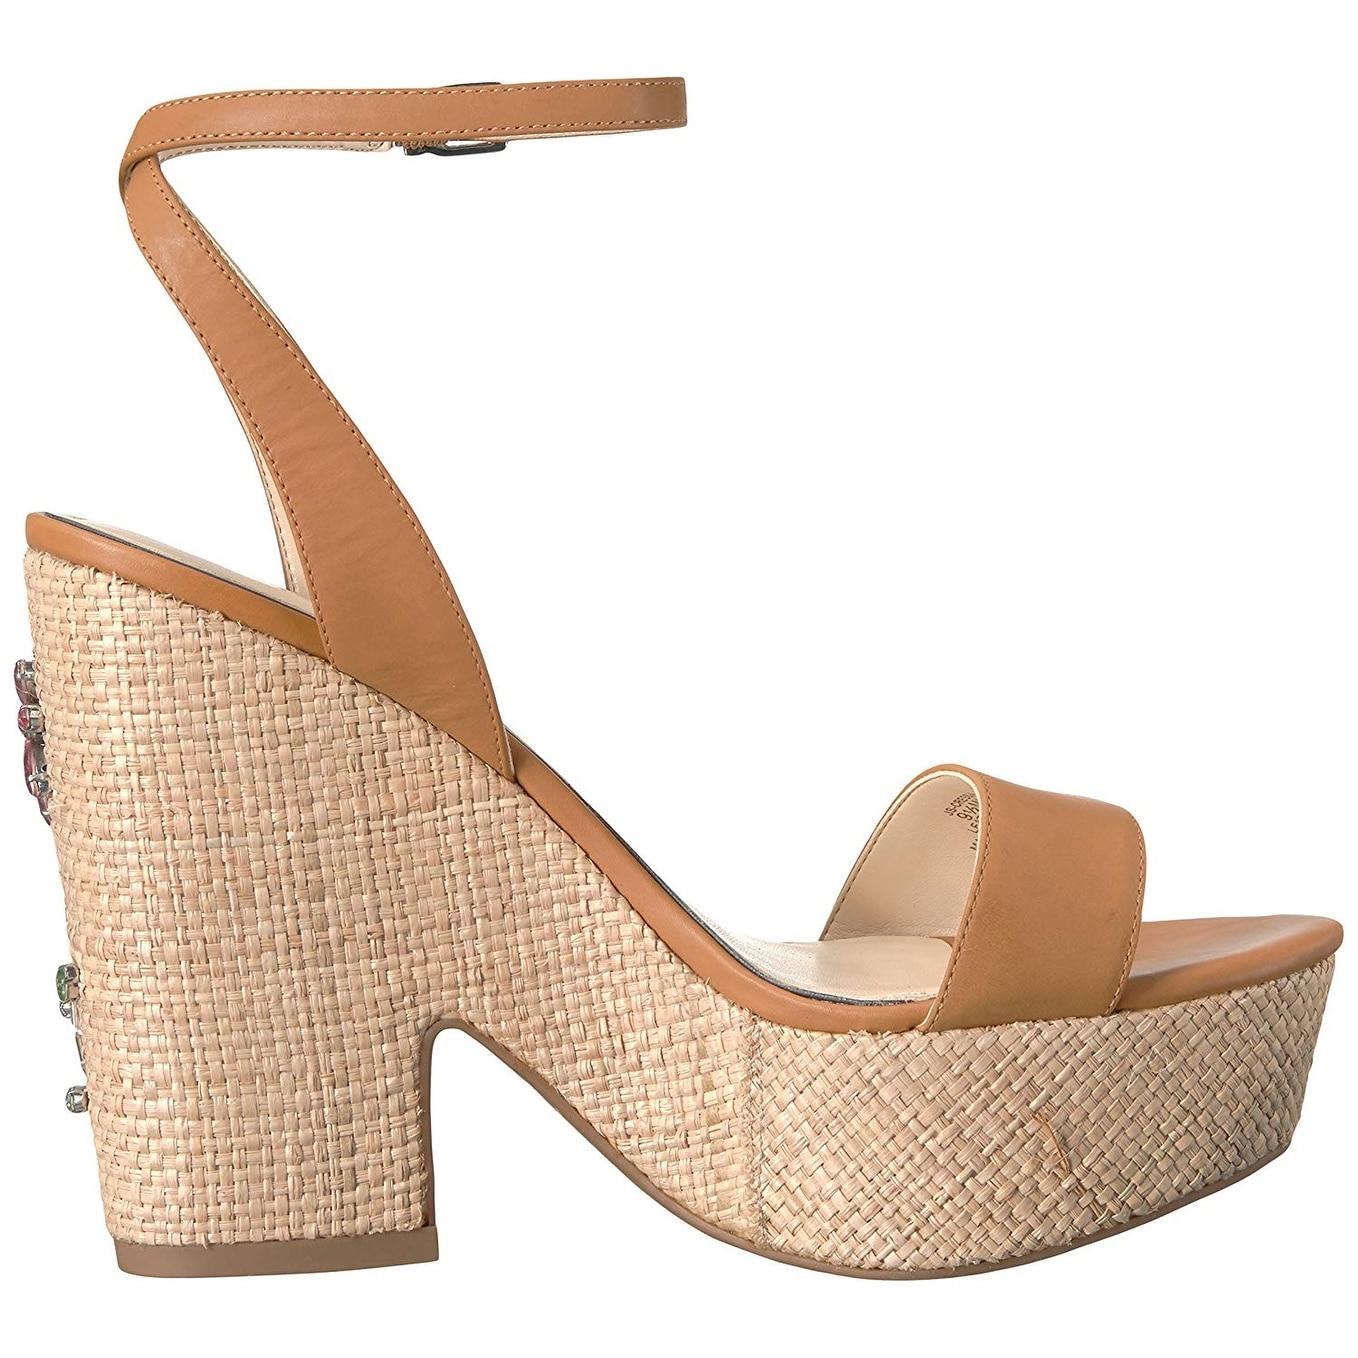 d033211debe Shop Jessica Simpson Women s Cressia Heeled Sandal - Ships To Canada -  Overstock - 24305796